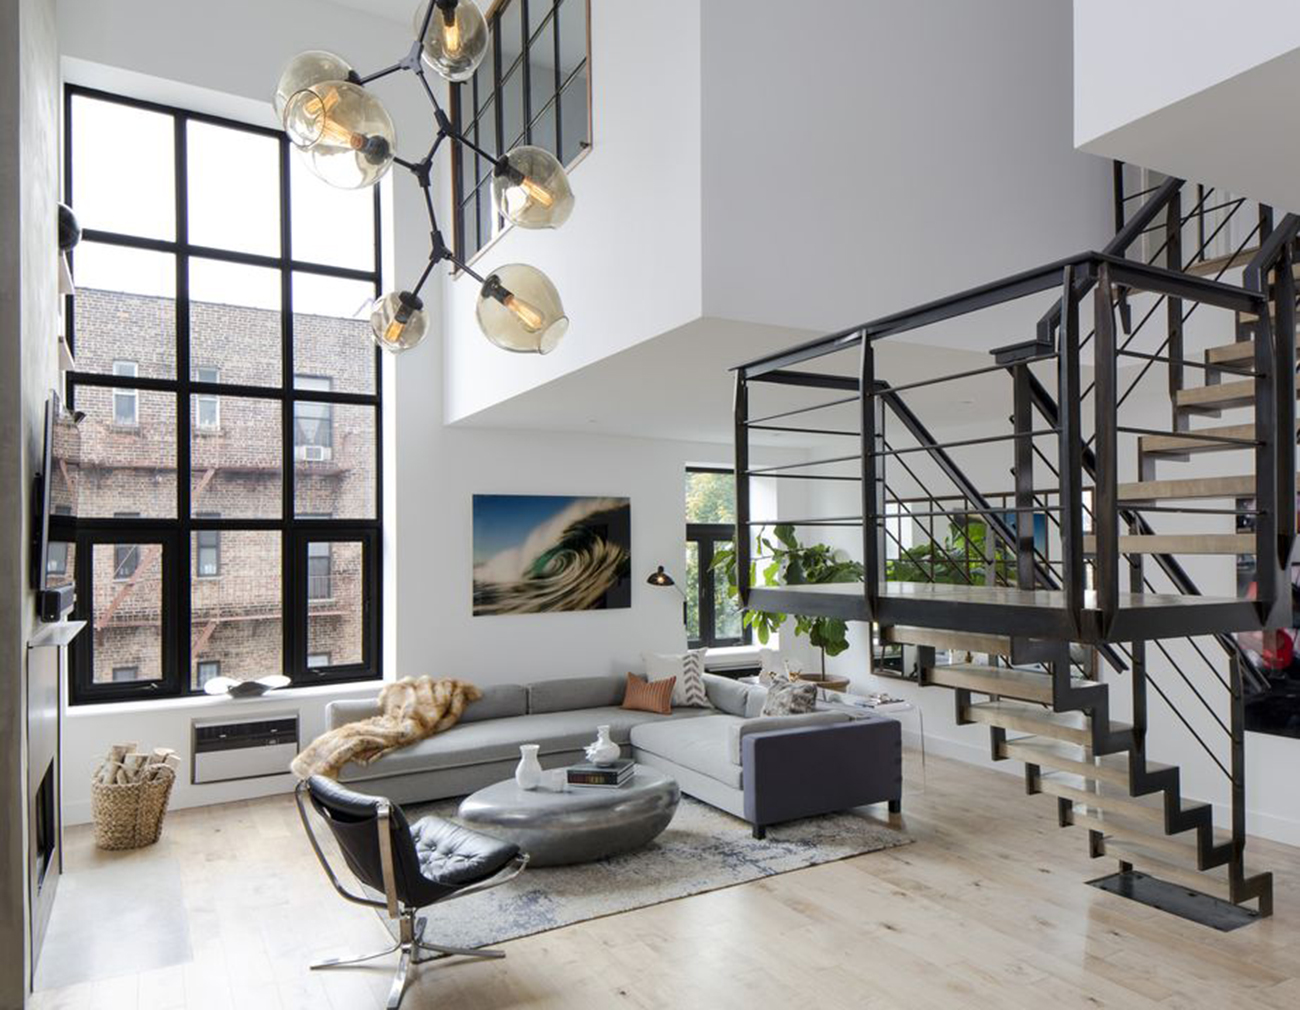 6 of the best new york apartments to rent - 2 bedroom apartments for rent in nyc 1200 ...